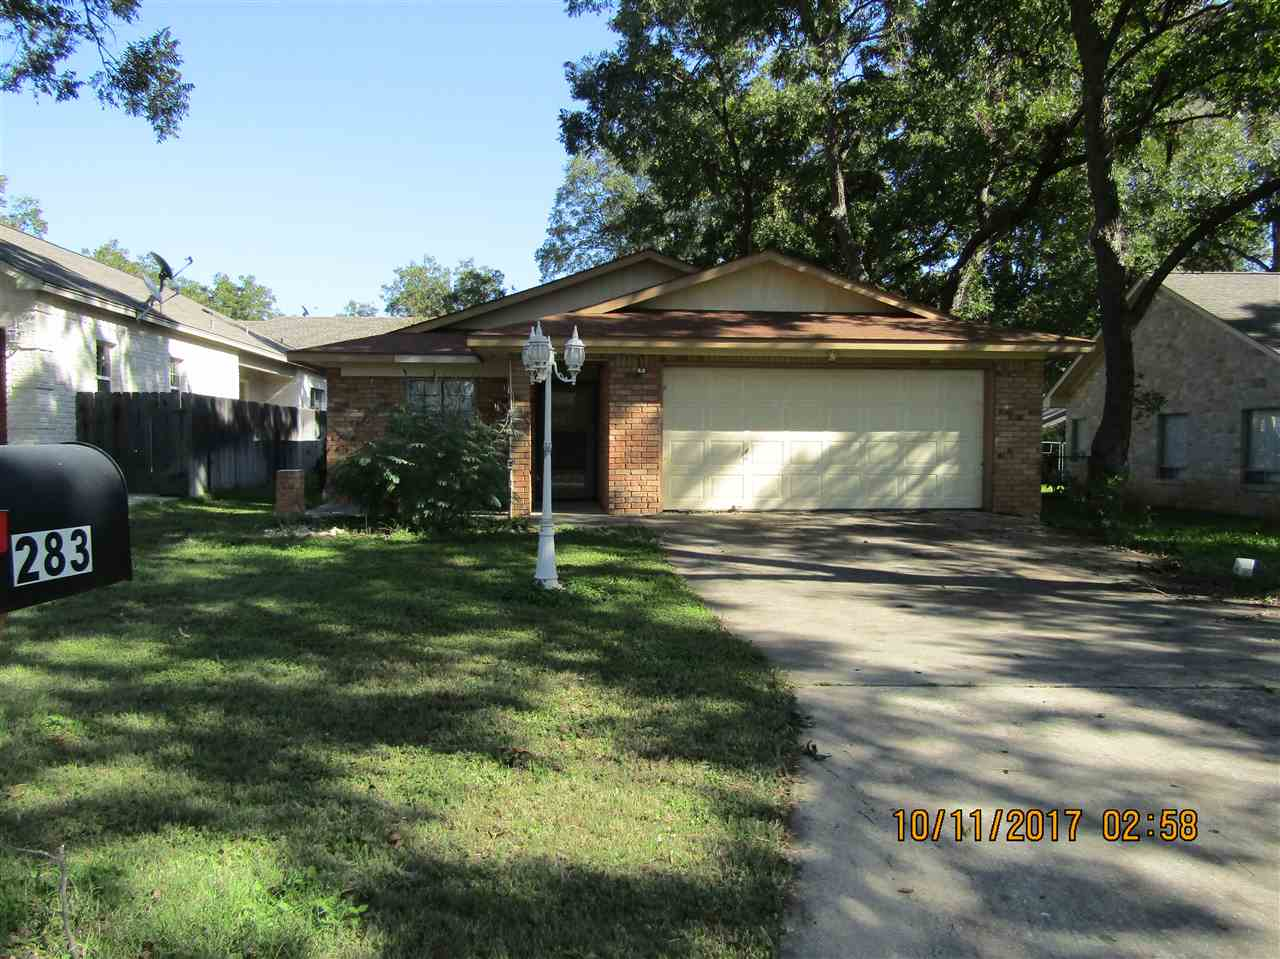 Single Family Home for Sale at 283 Turkey Run 283 Turkey Run Meadowlakes, Texas 78654 United States